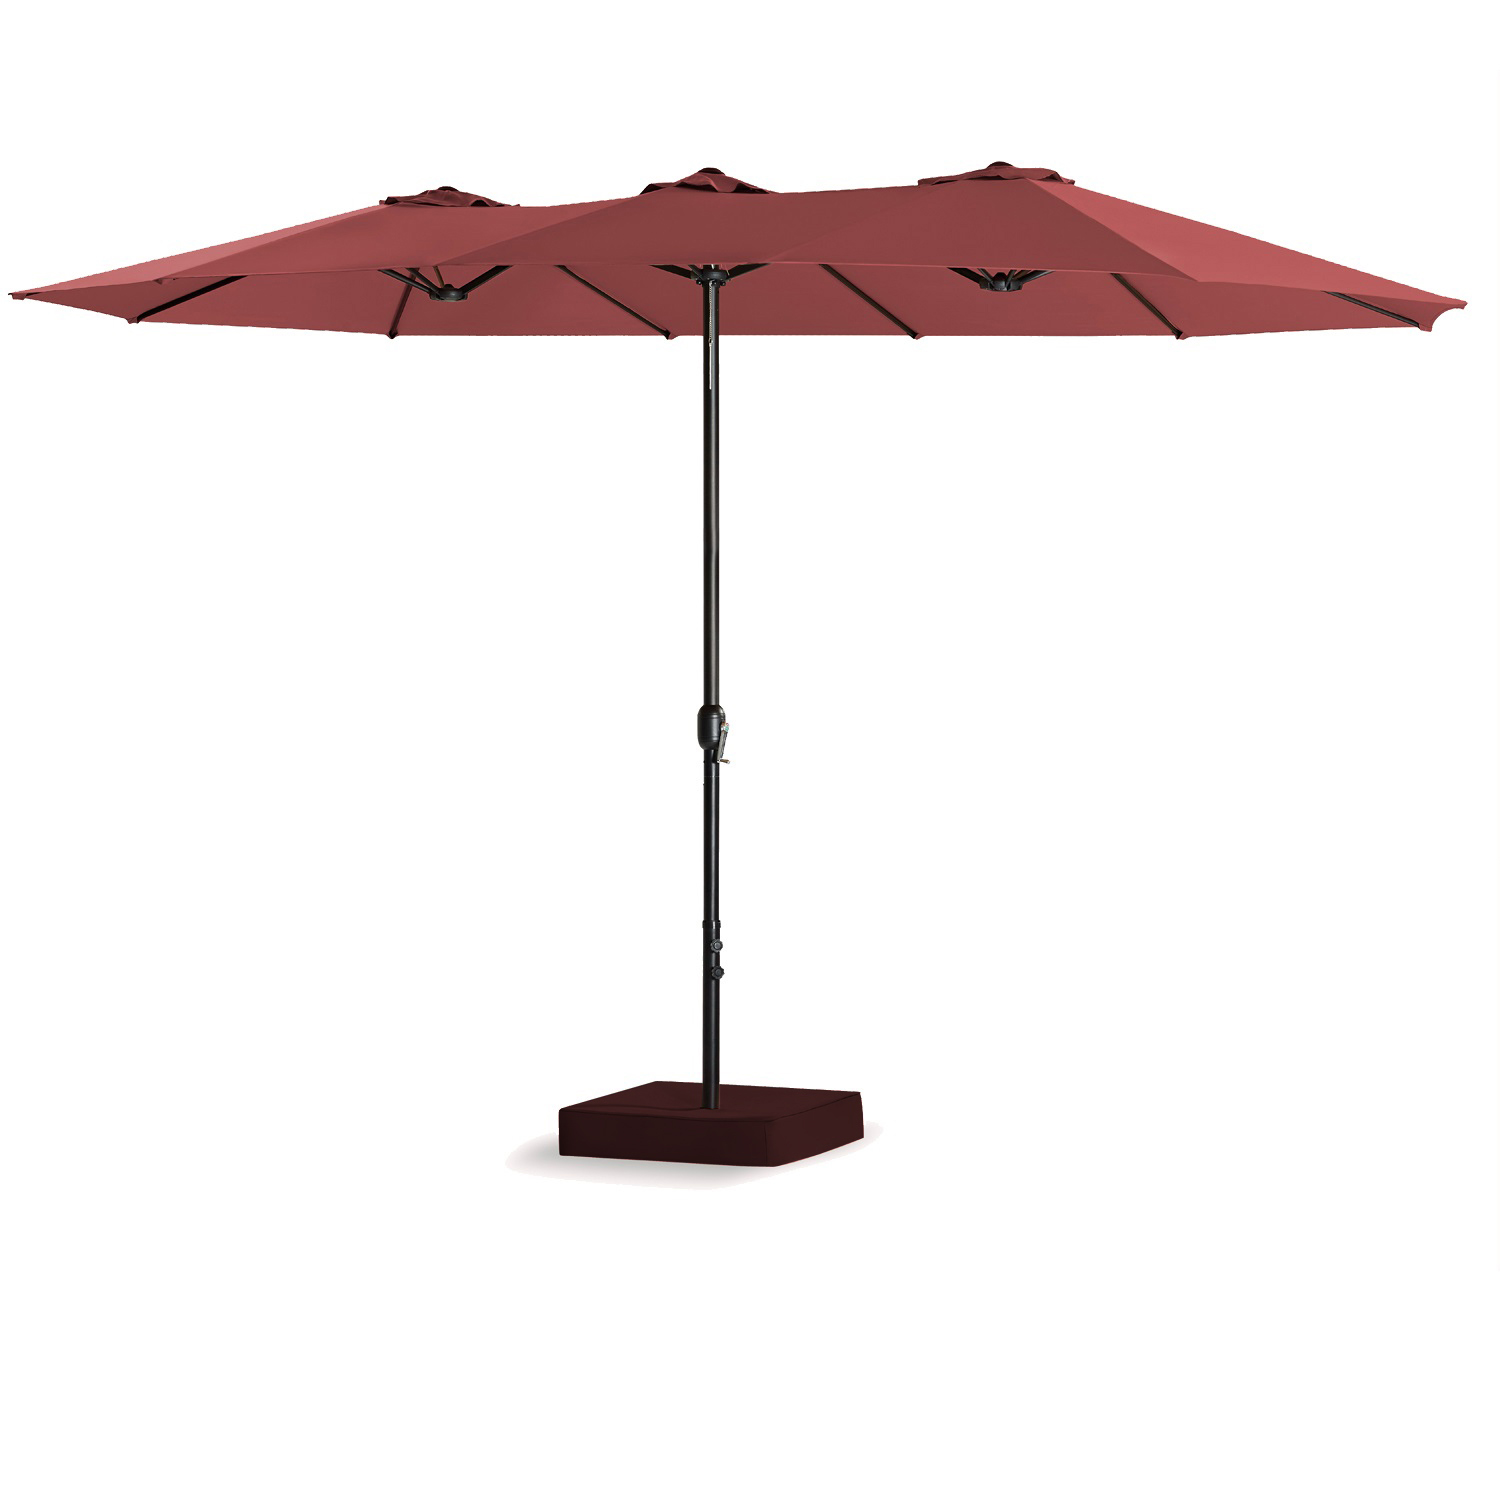 15 Ft Double-Sided Outdoor Market Umbrella 12 Ribs, Crank System, 100% Polyester, Base Included (Beige) by